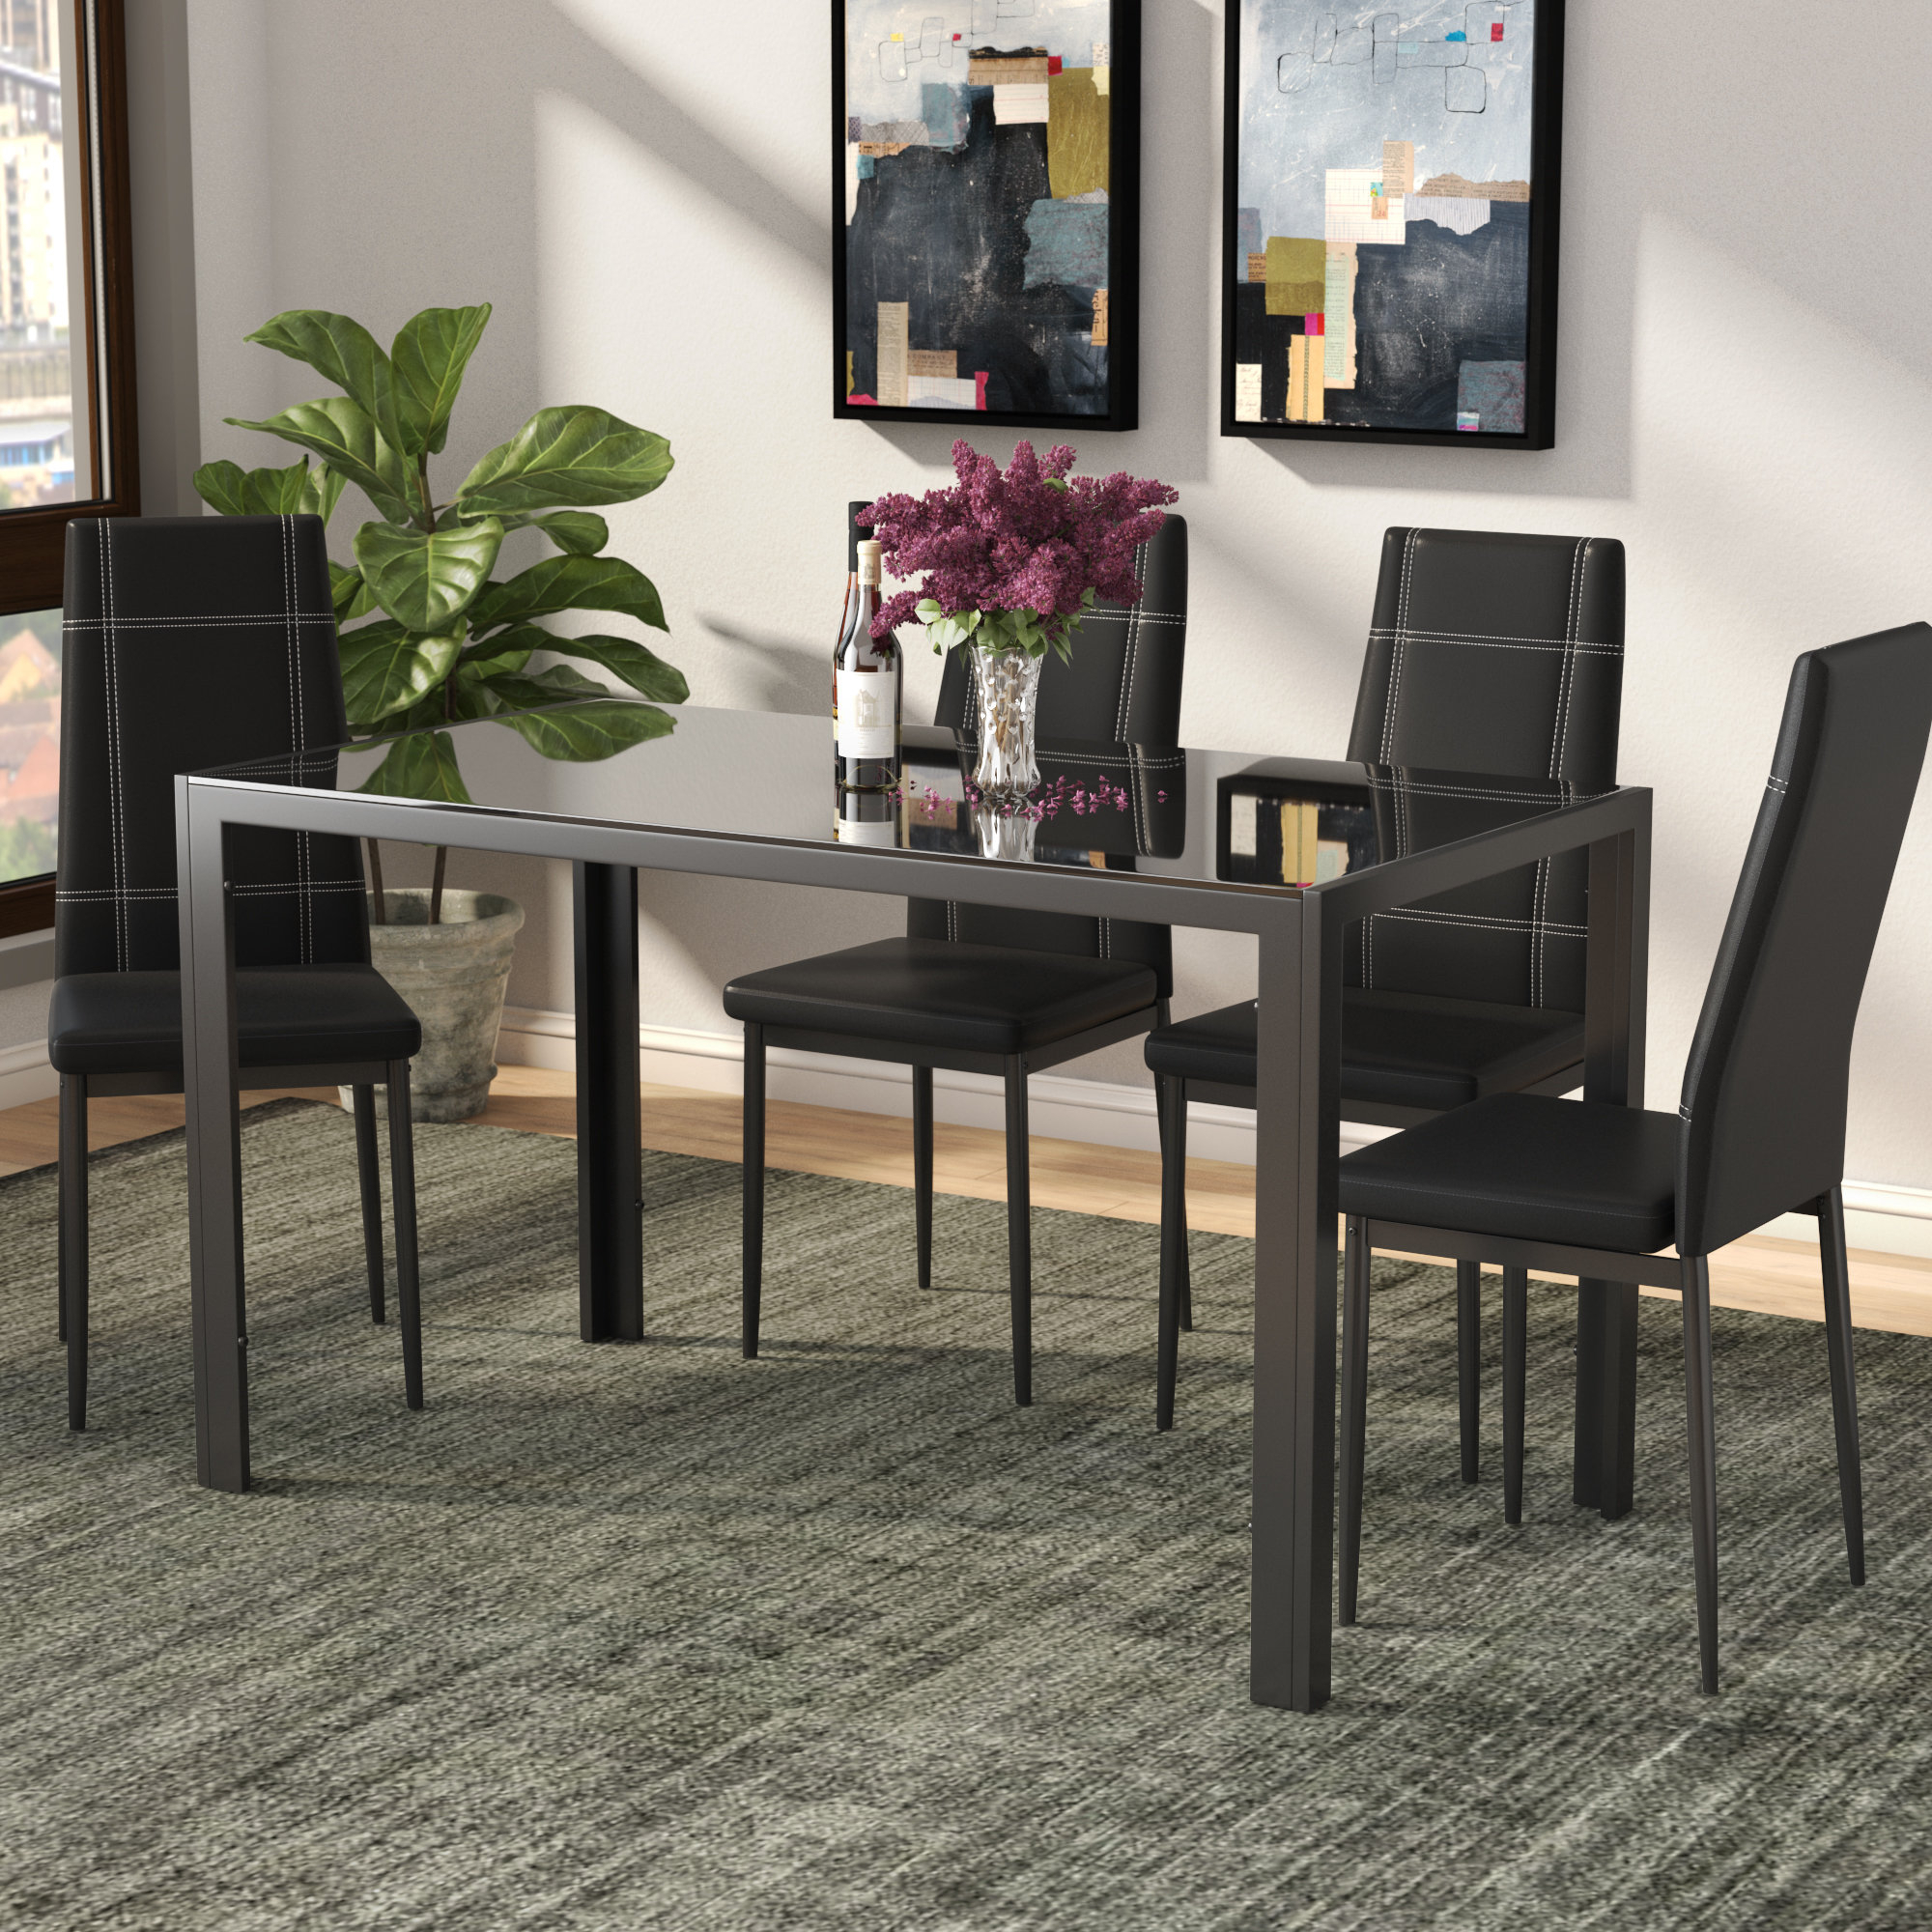 Popular Photo of Maynard 5 Piece Dining Sets